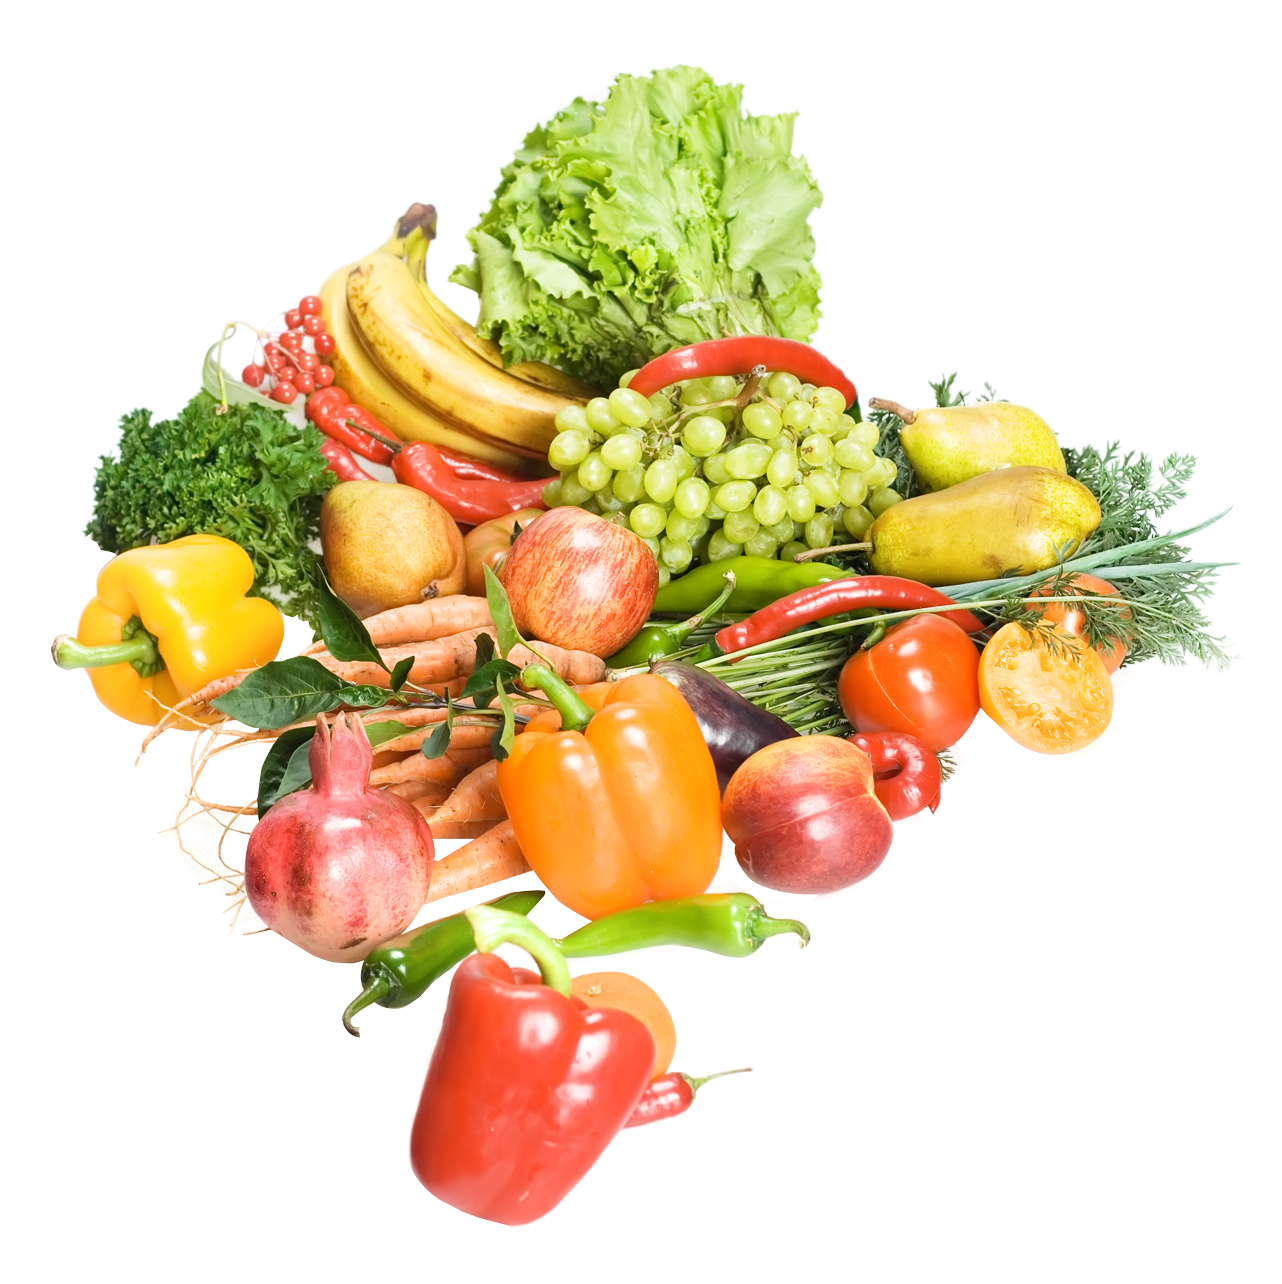 fruits and vegetables png image pngpix #15392